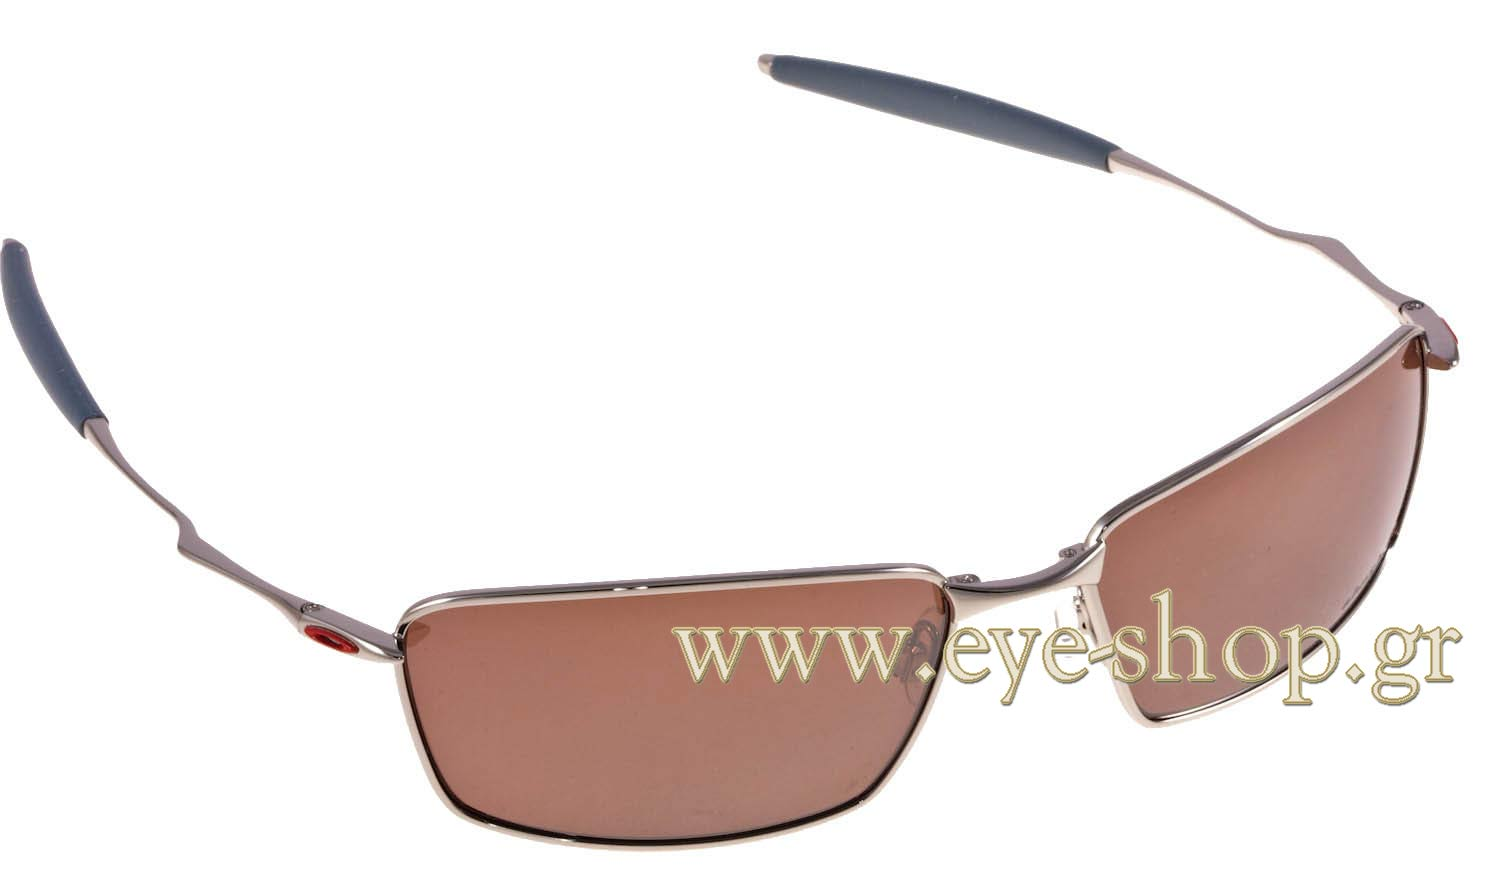 48eb9c39fe5 SUNGLASSES Oakley Square Whisker 4036 24-200 Polarised Alinghi